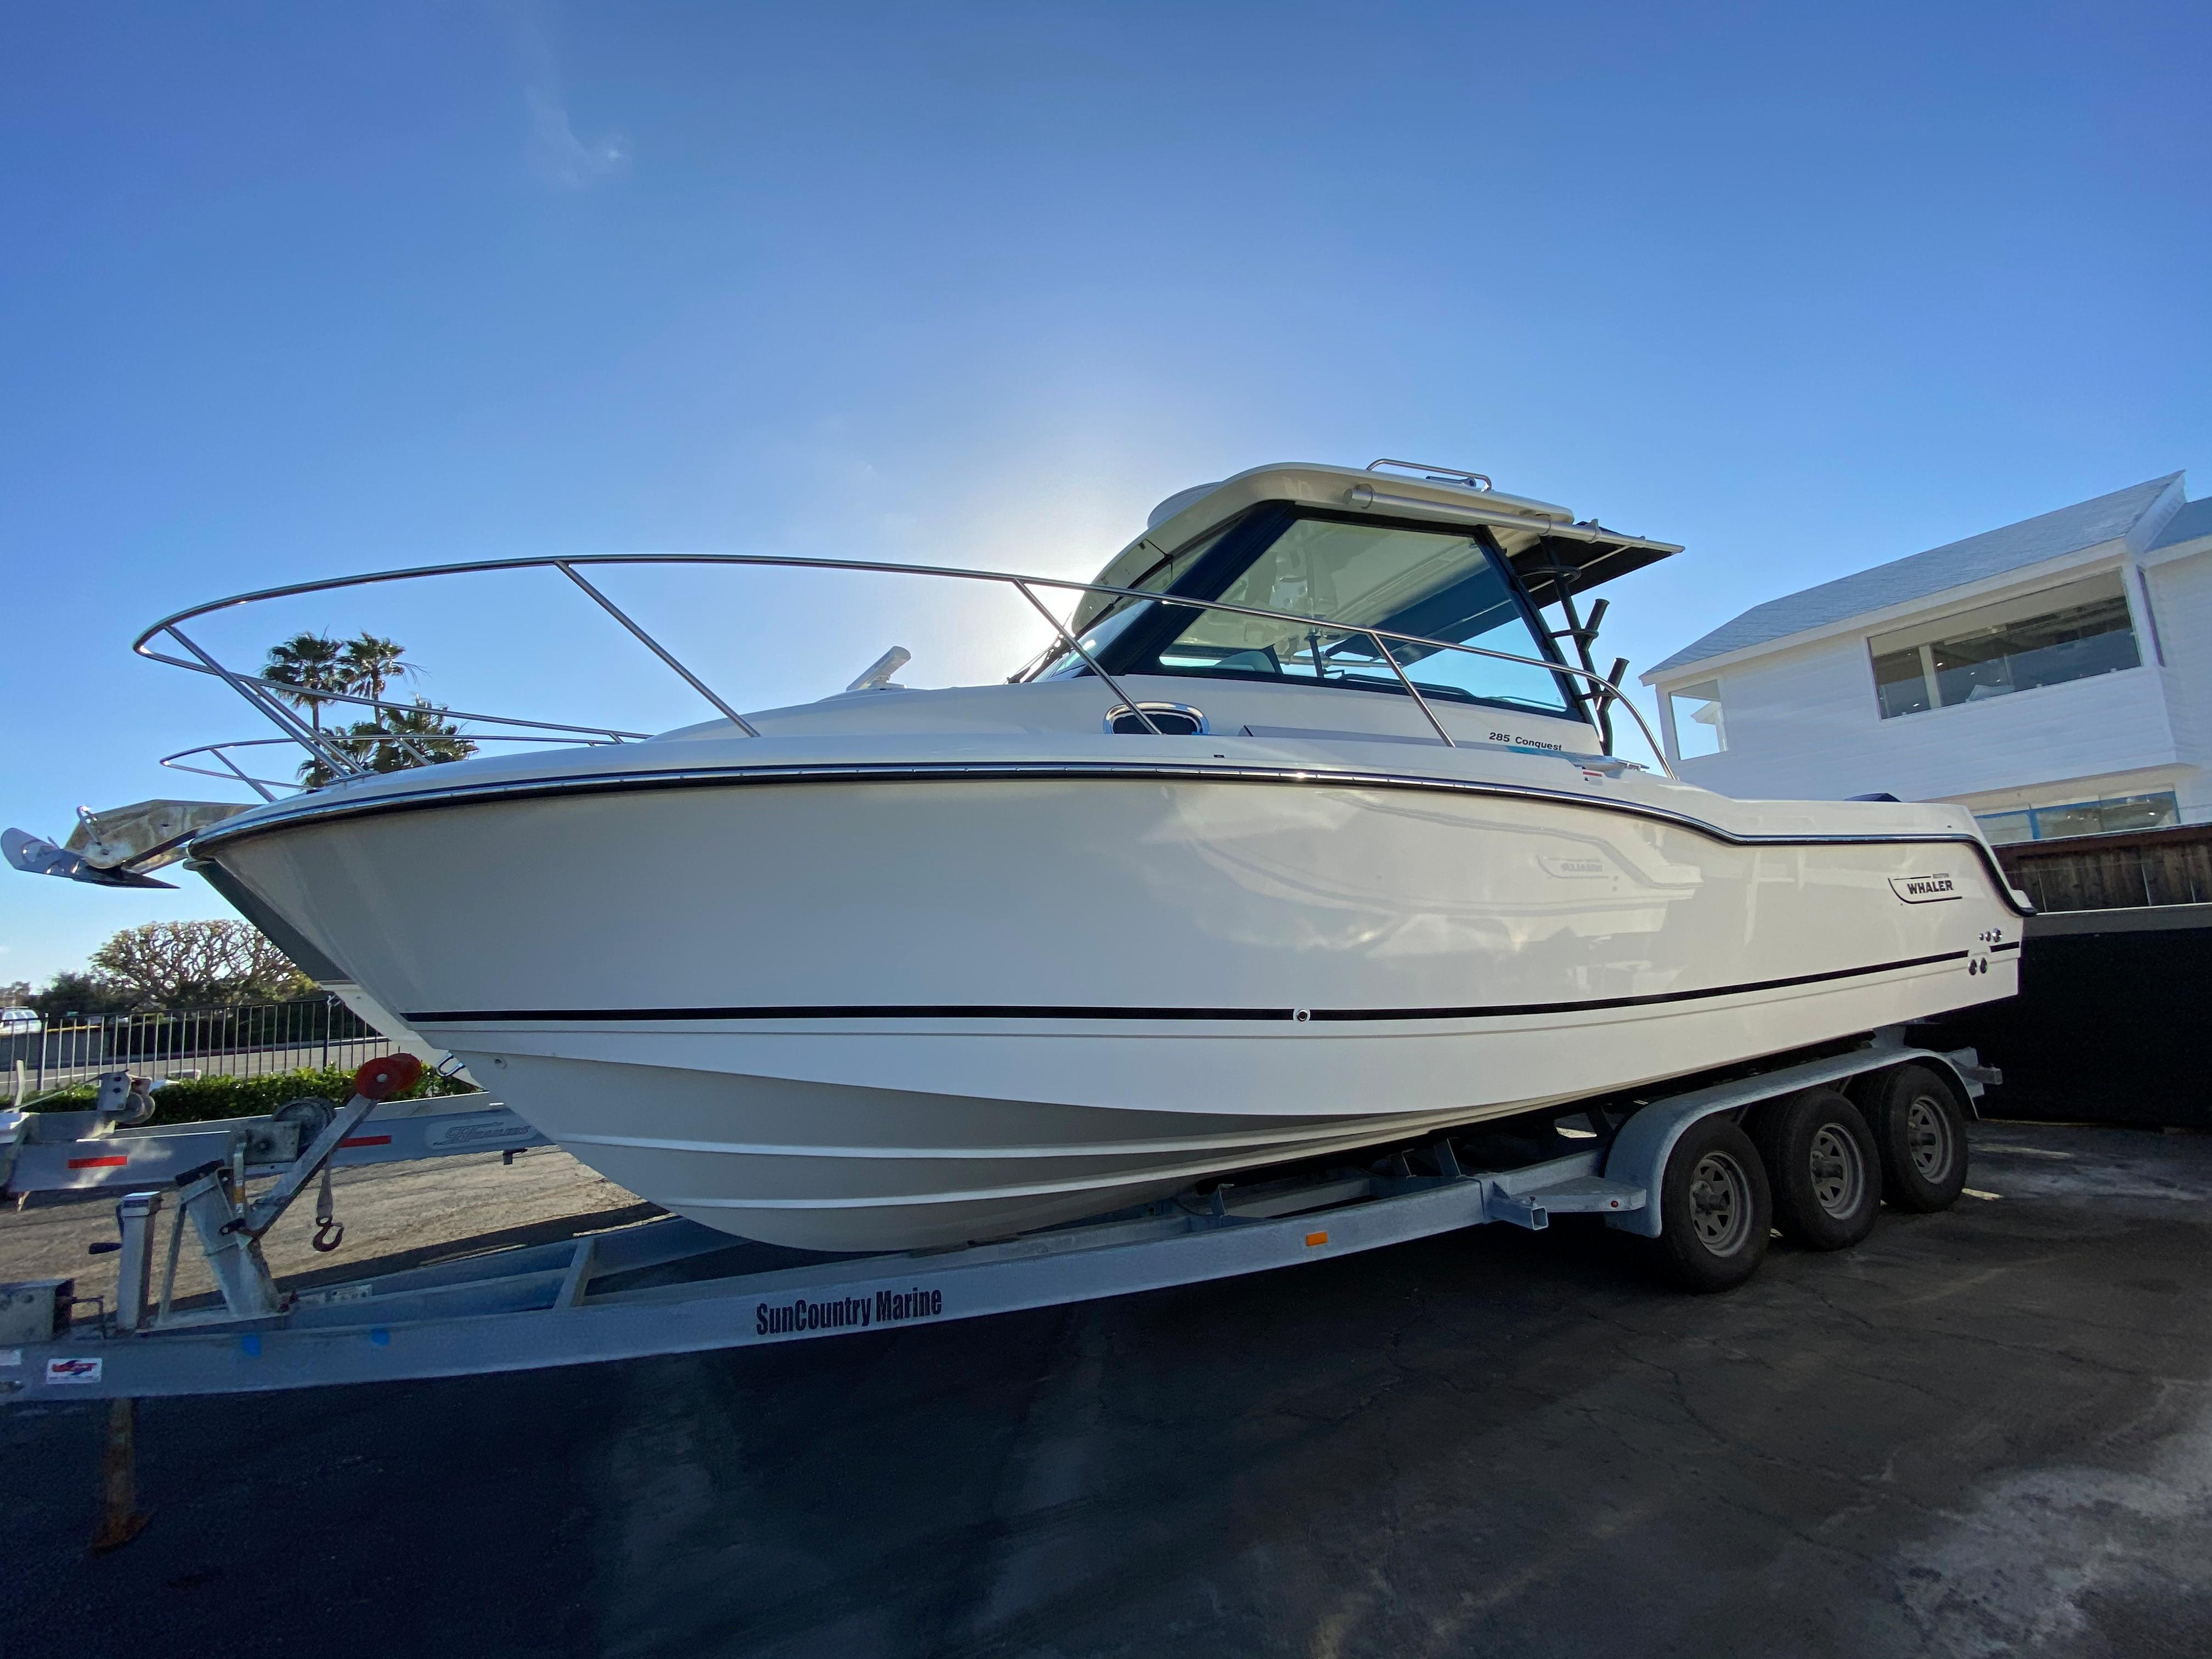 2021 Boston Whaler 285 Conquest #BW1643A inventory image at Sun Country Coastal in Newport Beach